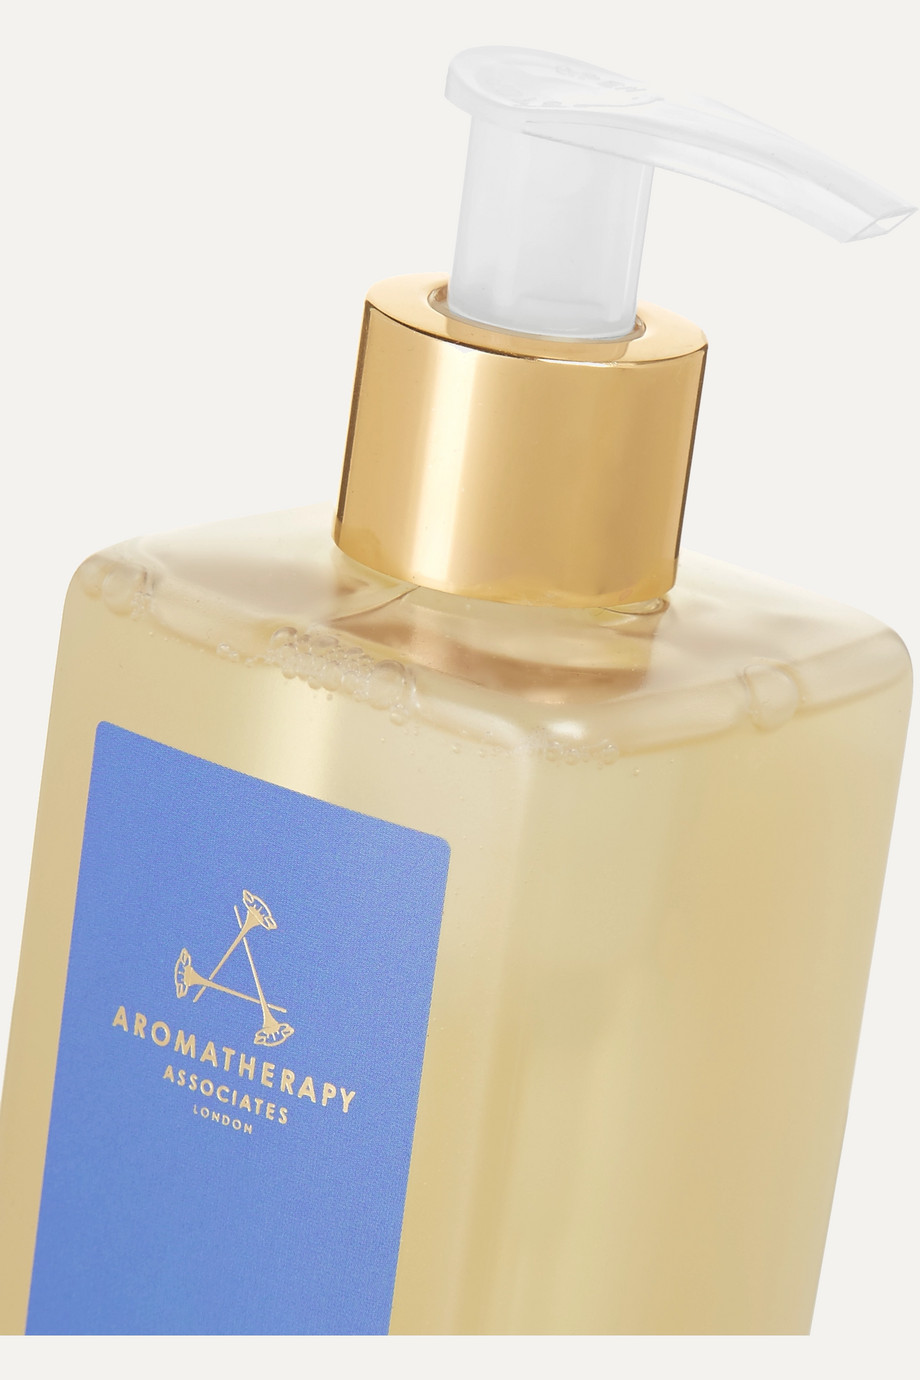 Aromatherapy Associates Relax Body Wash, 250ml